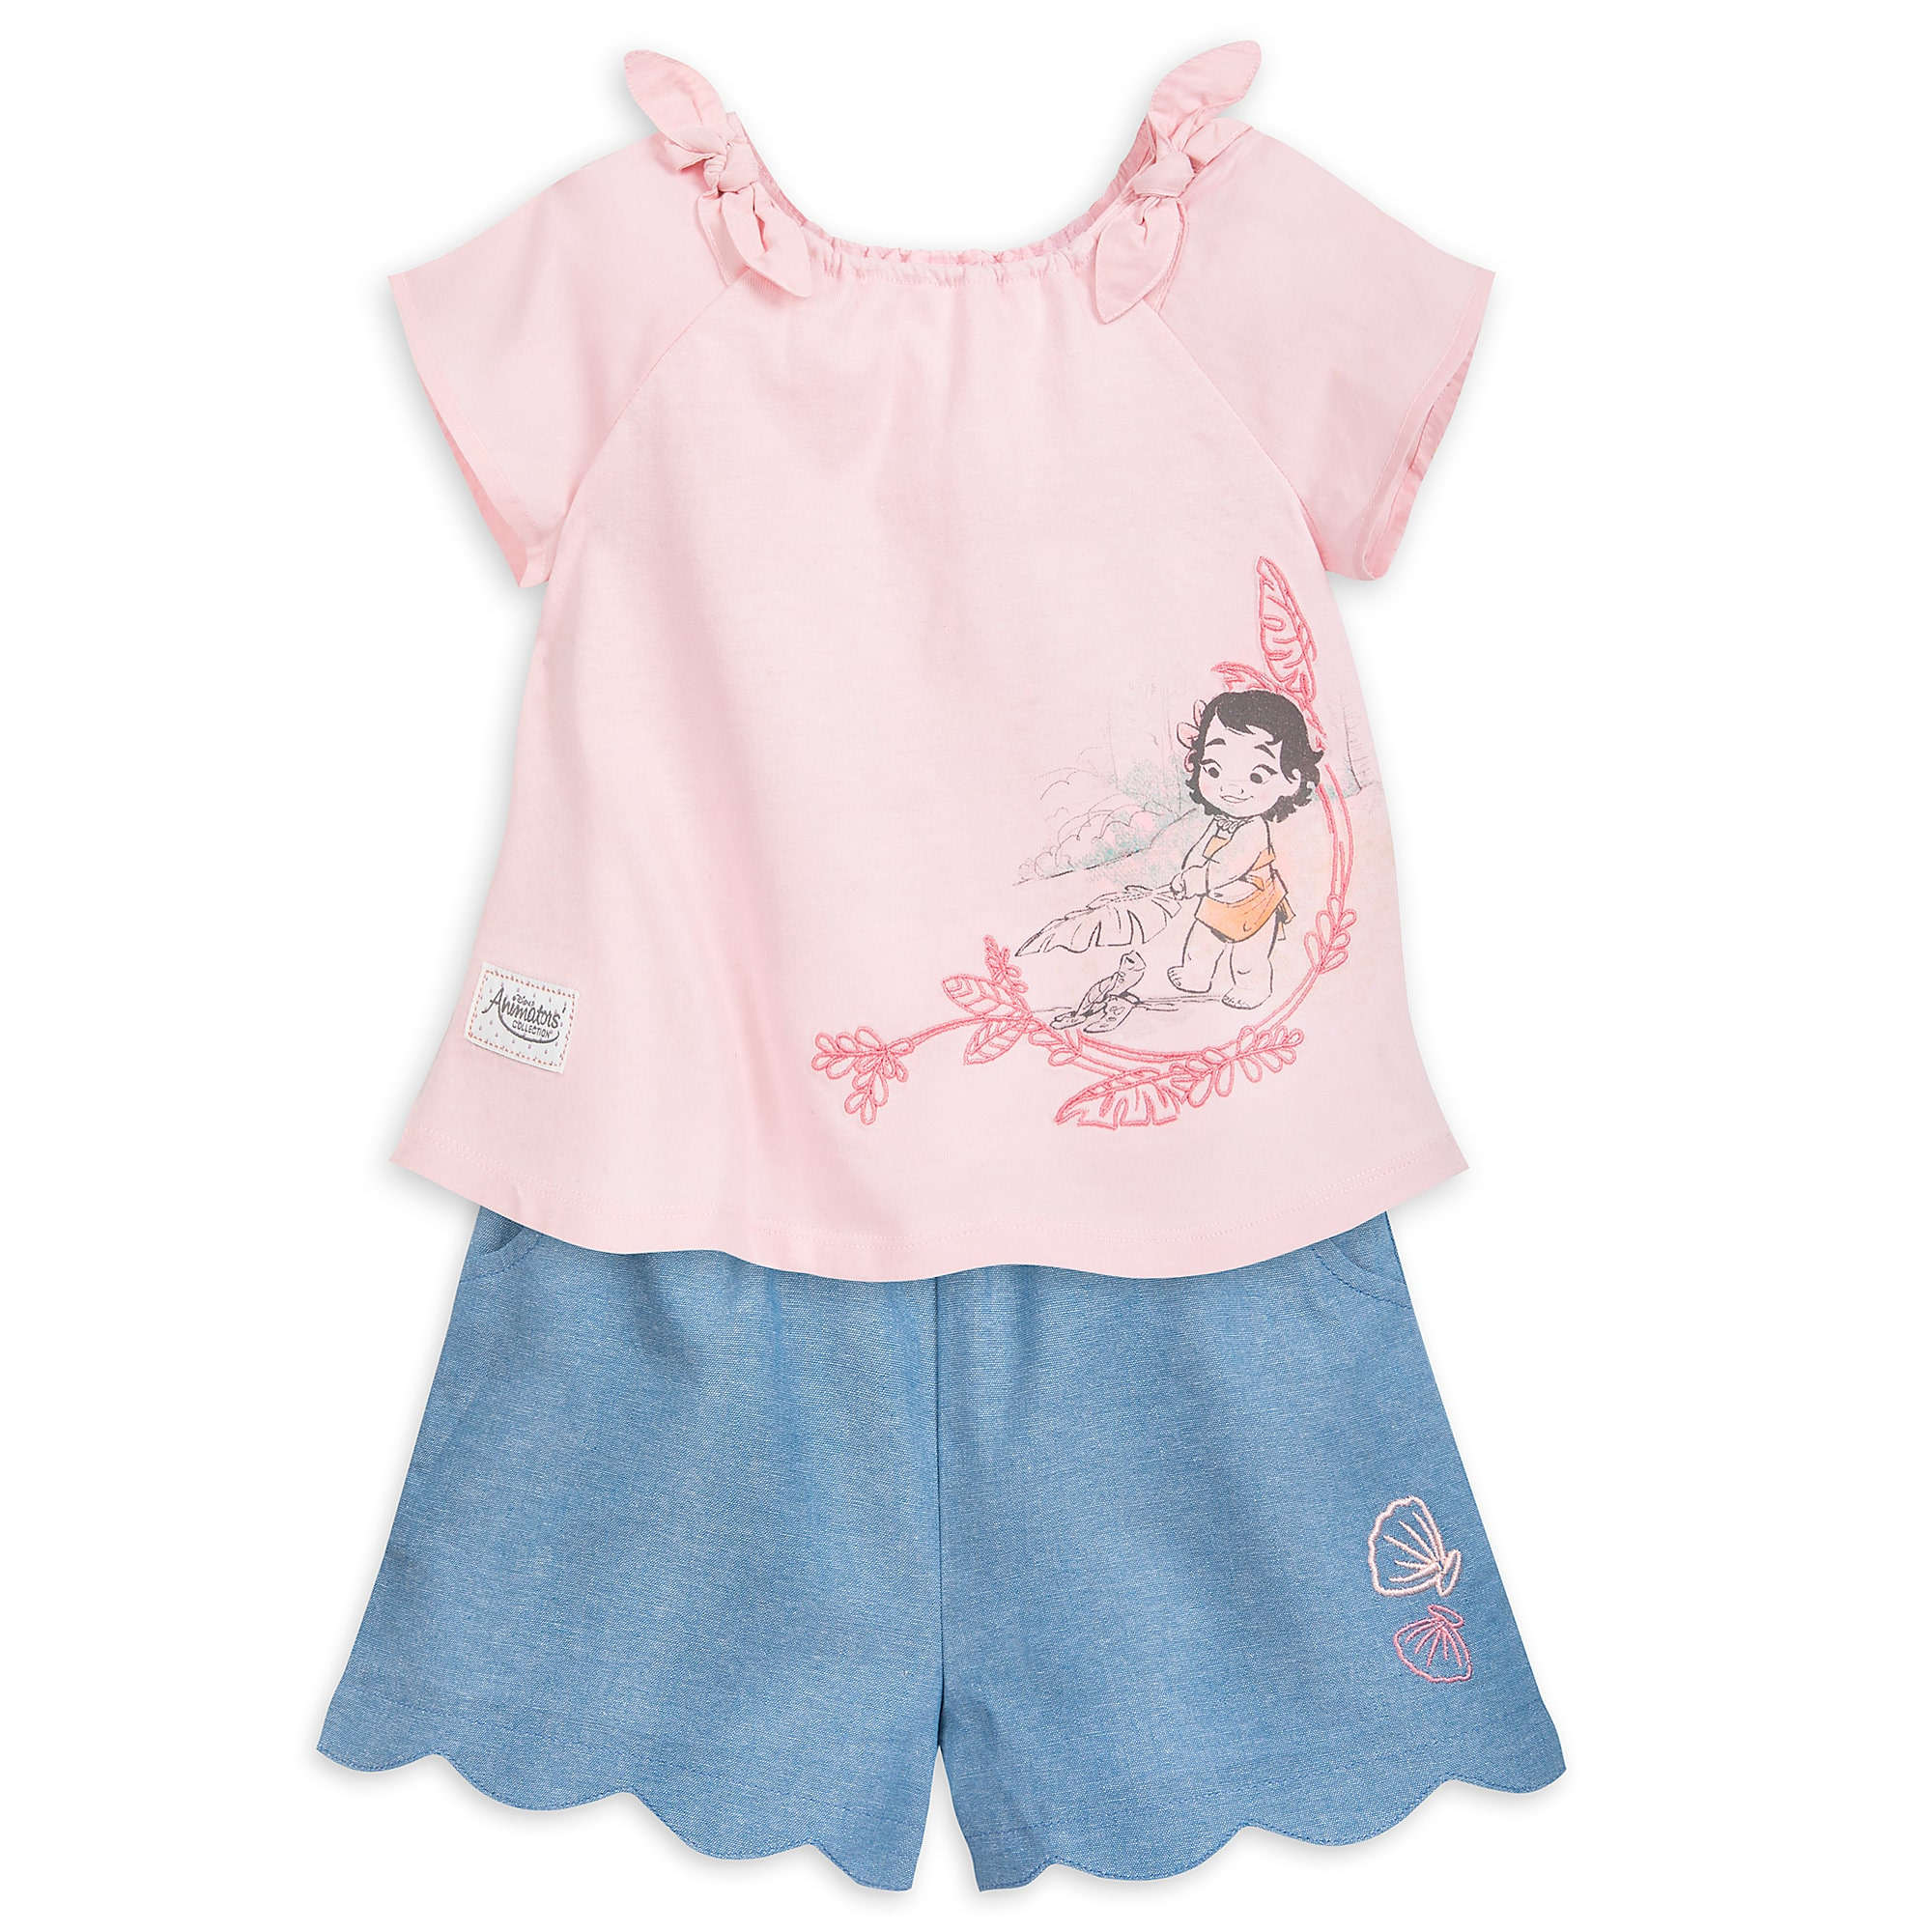 Moana Shirt and Shorts Set for Girls - Disney Animators' Collection